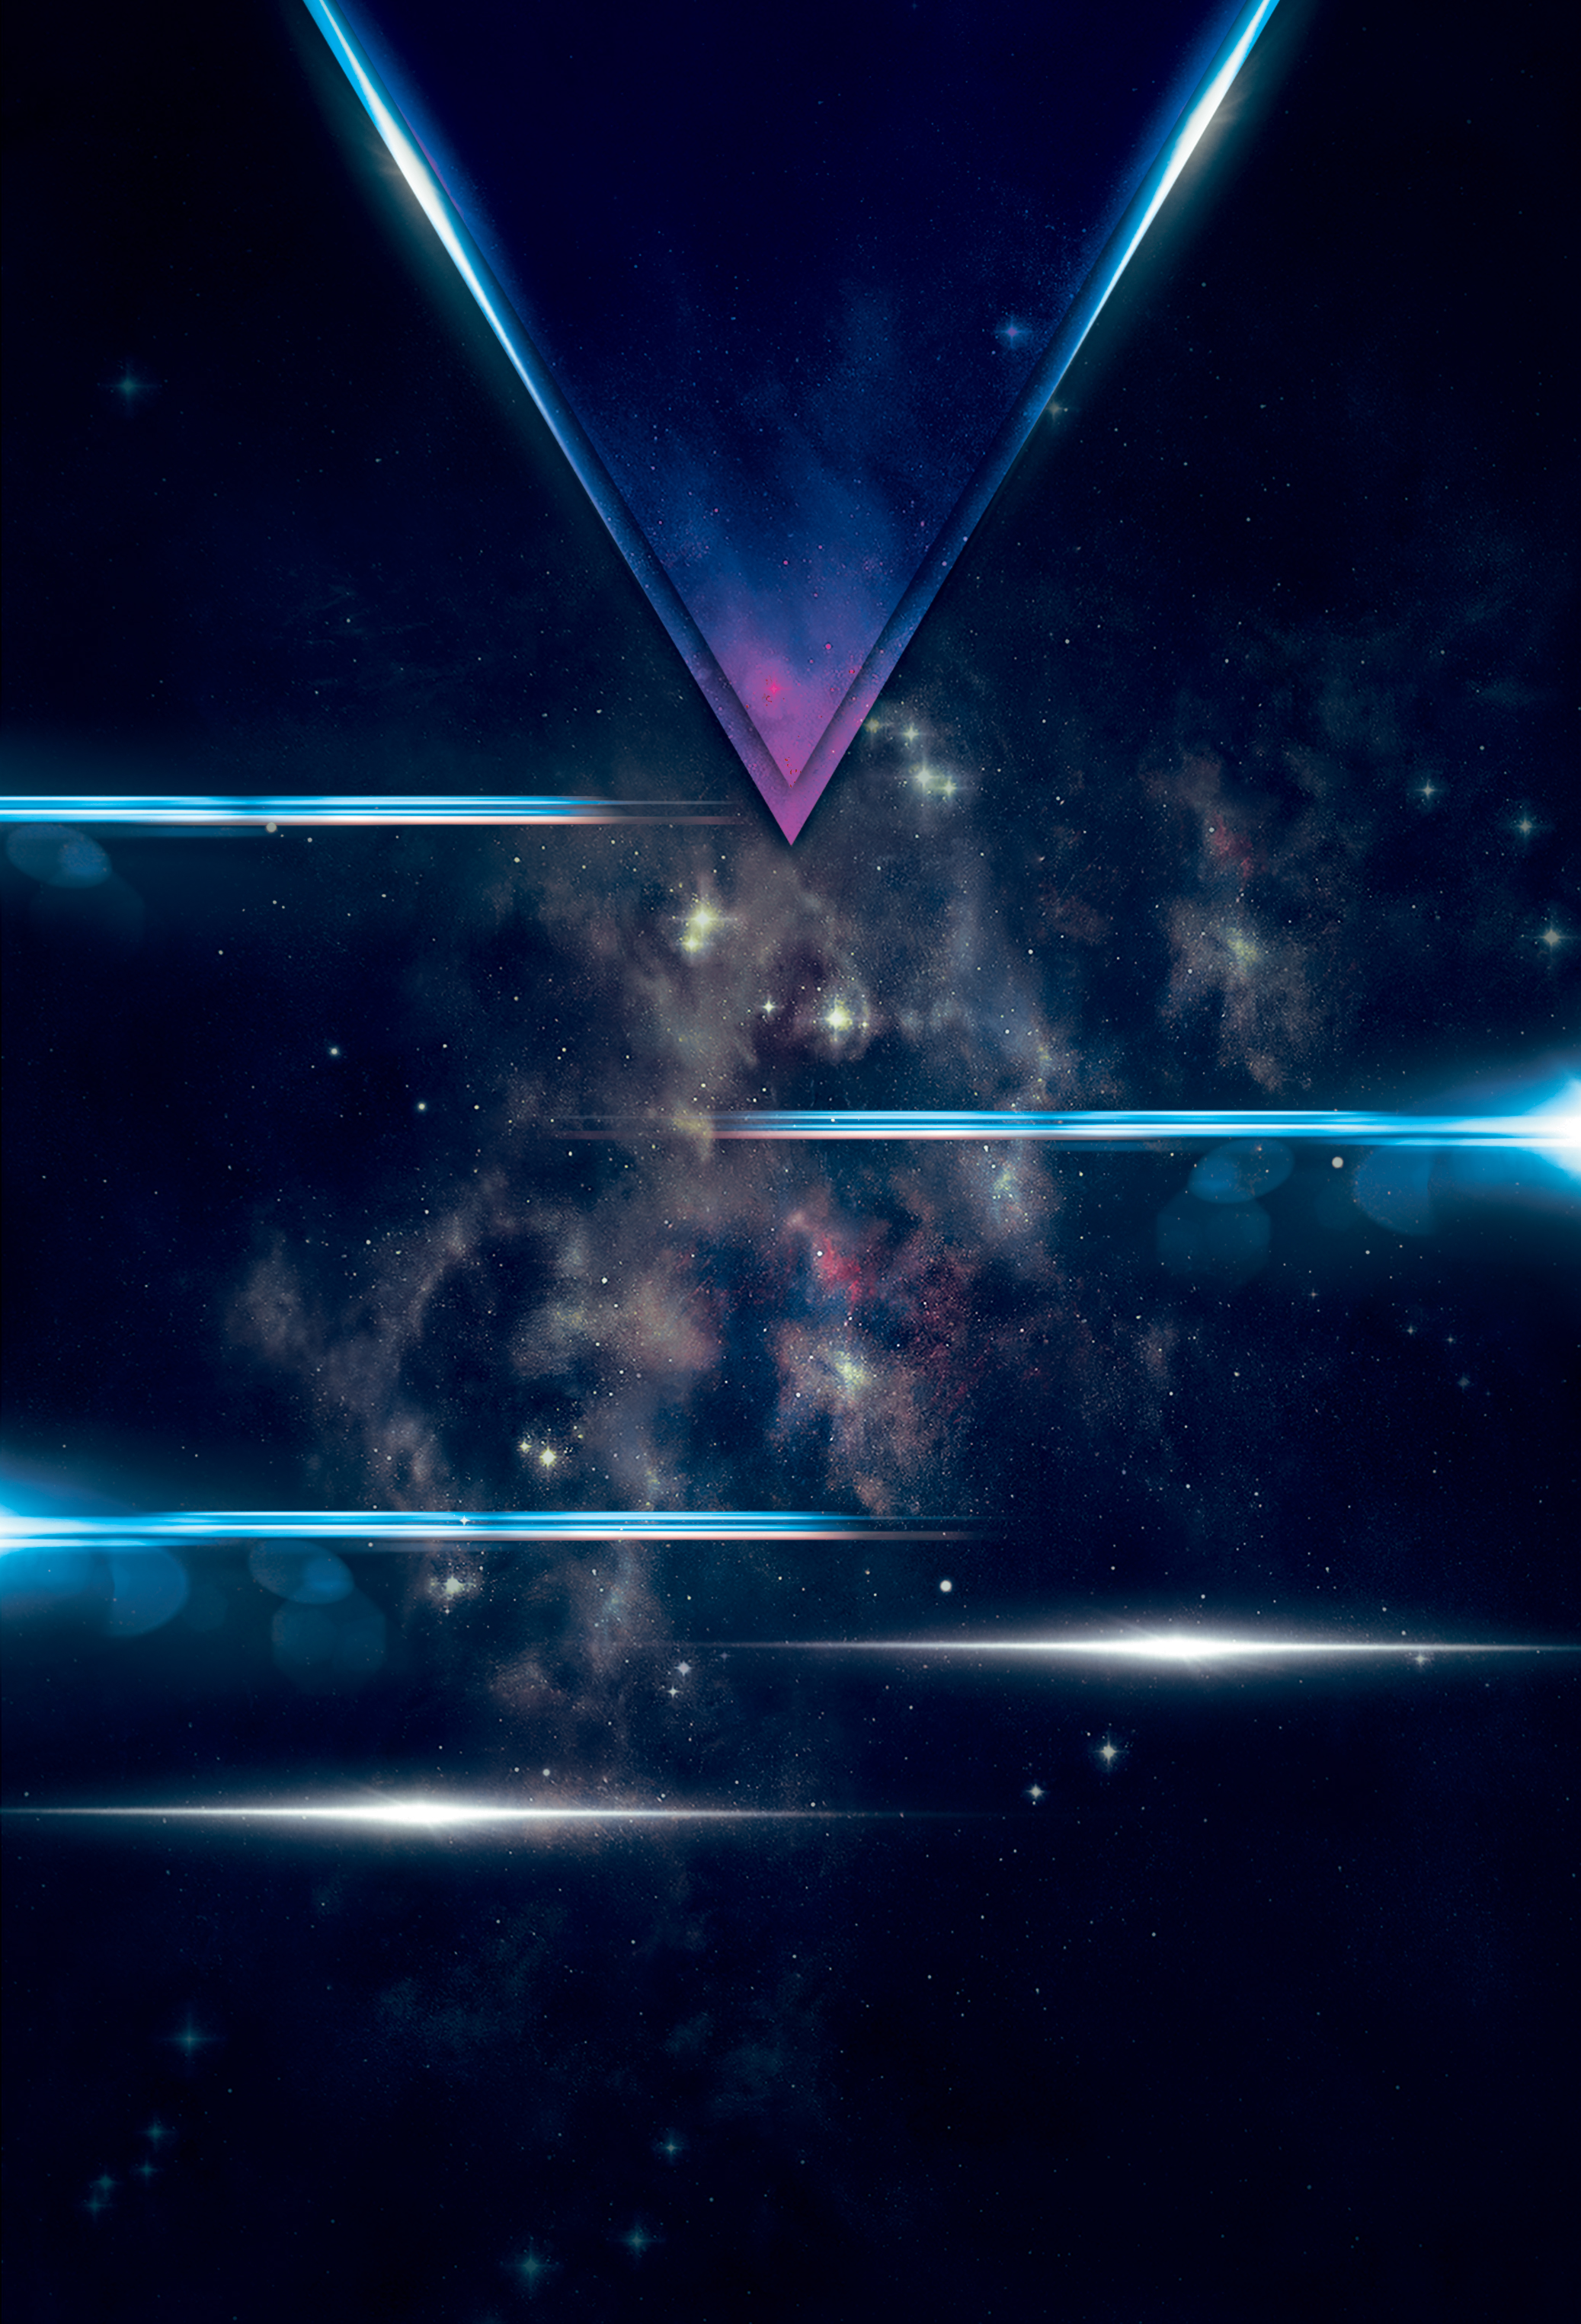 galaxy space triangle bar poster background psd  galaxy